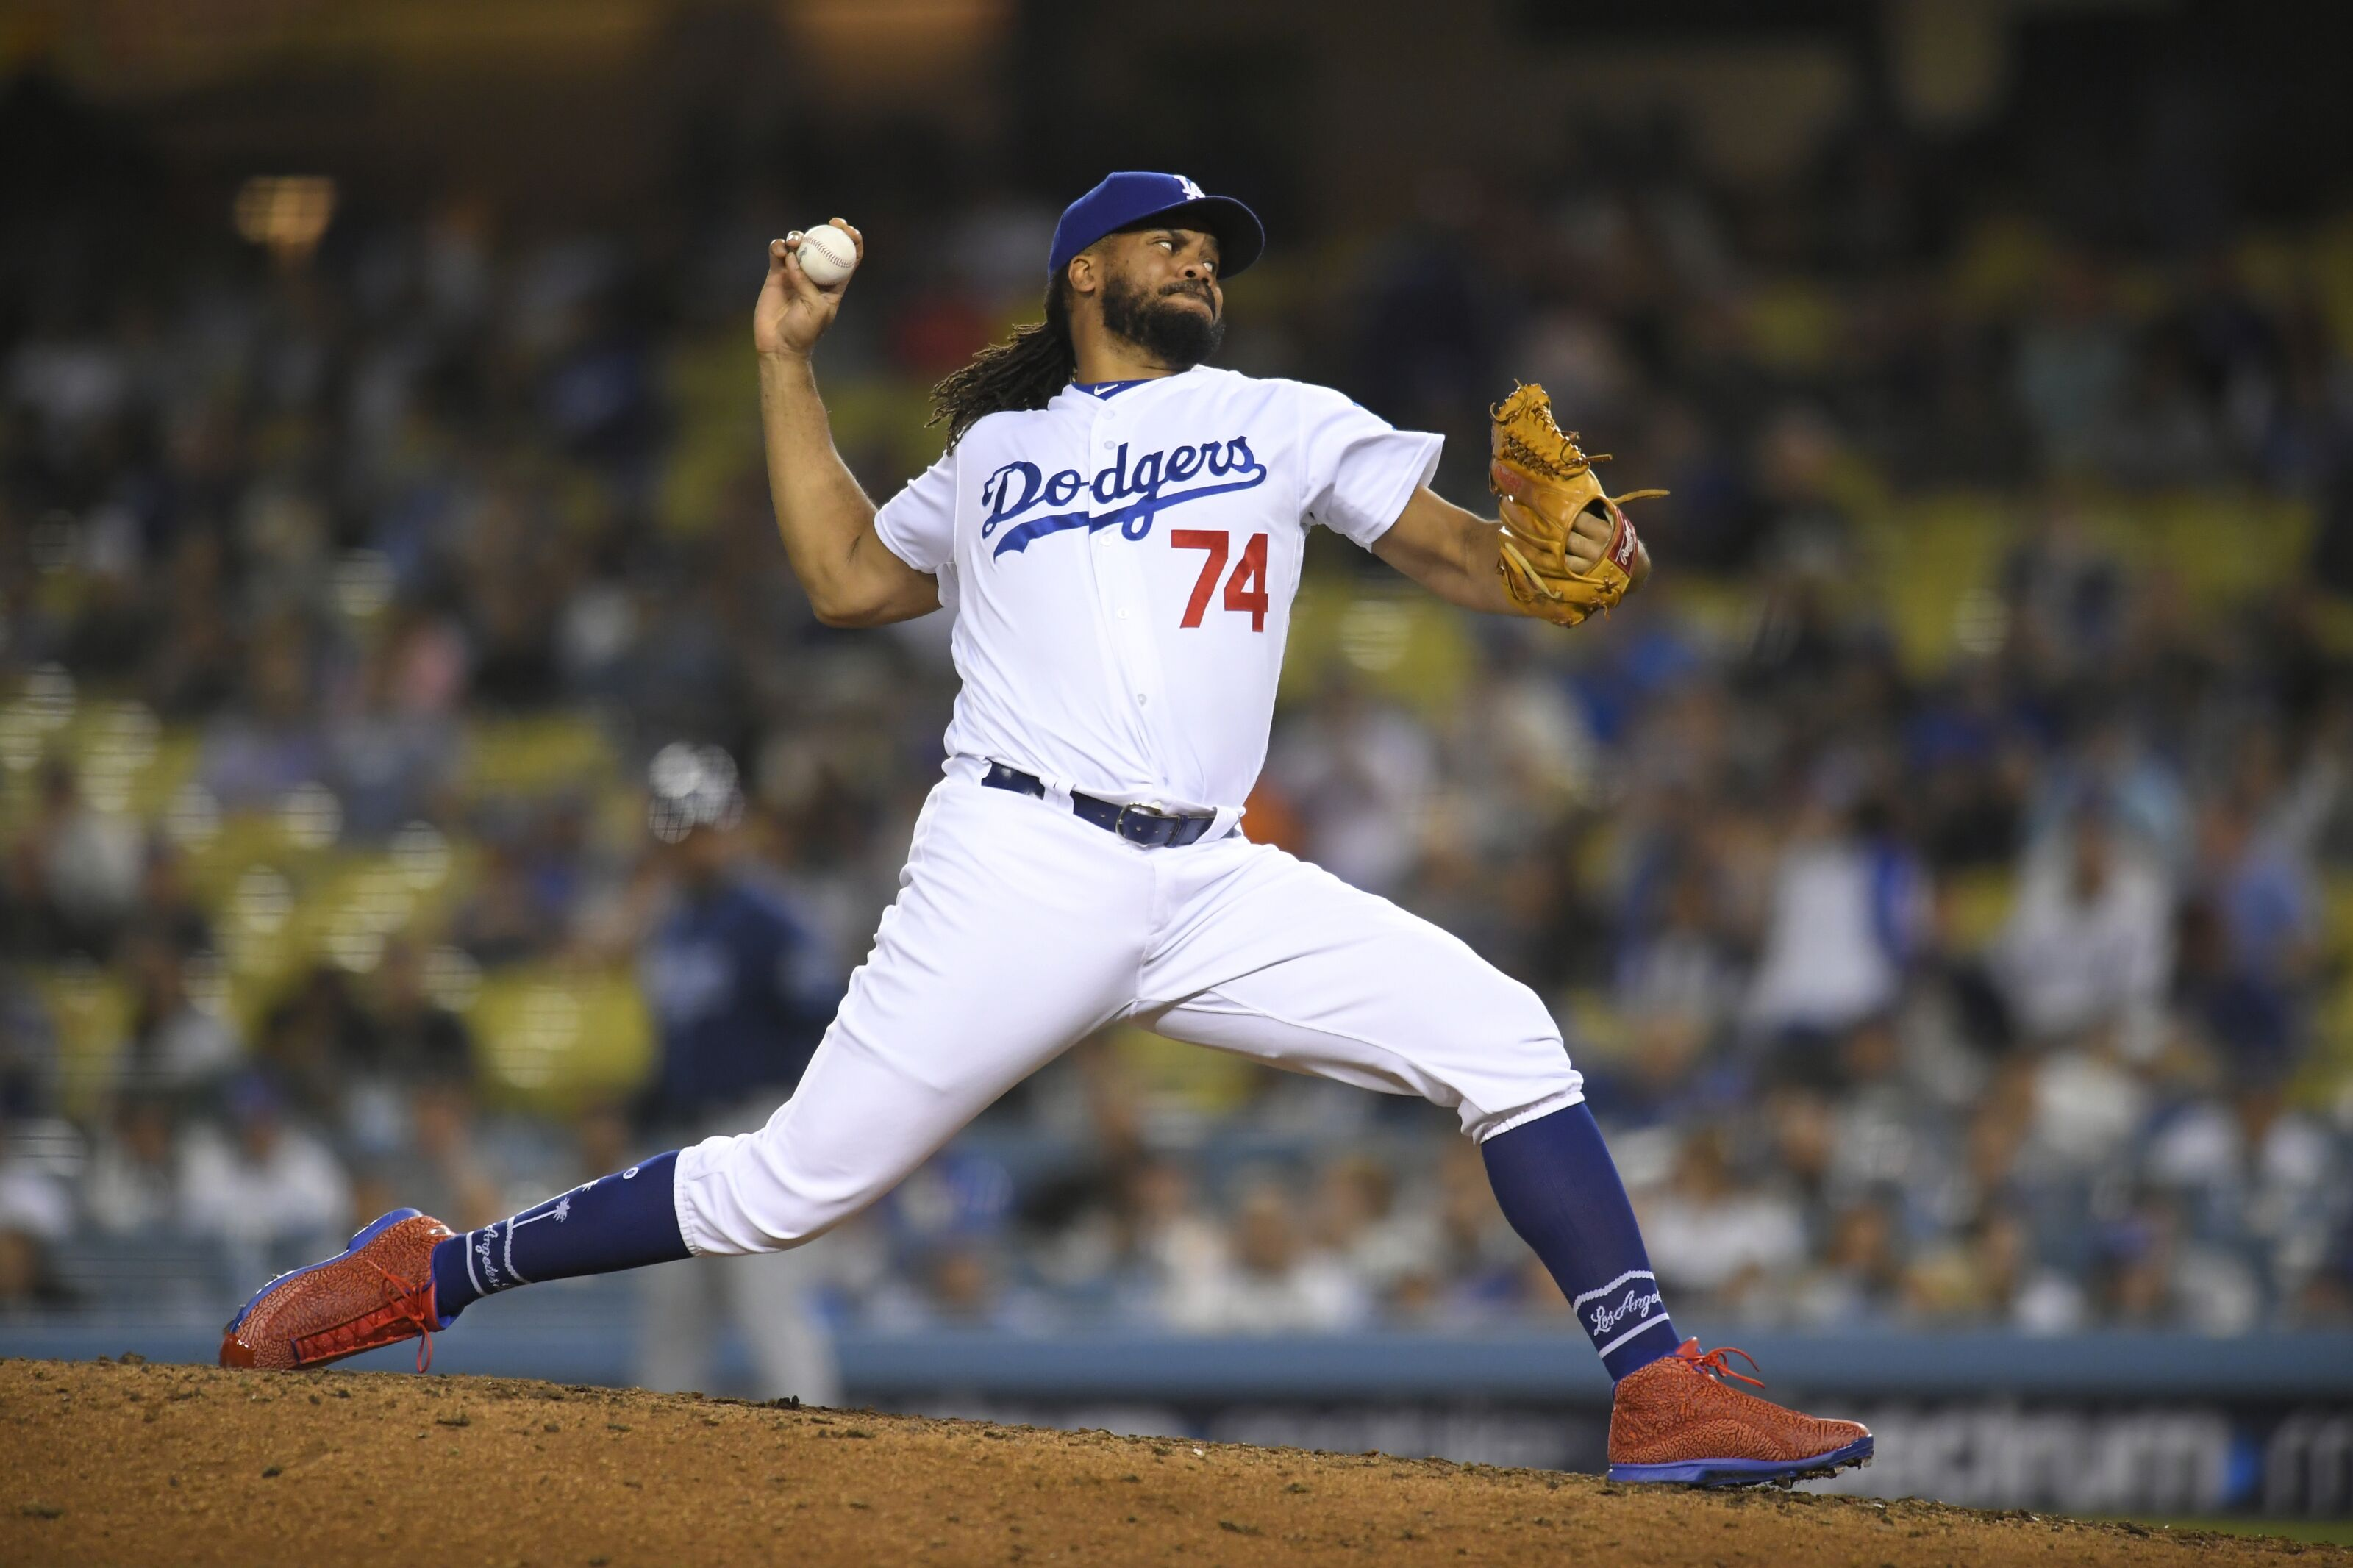 Dodgers: Dave Roberts is in a tough spot with Kenley Jansen